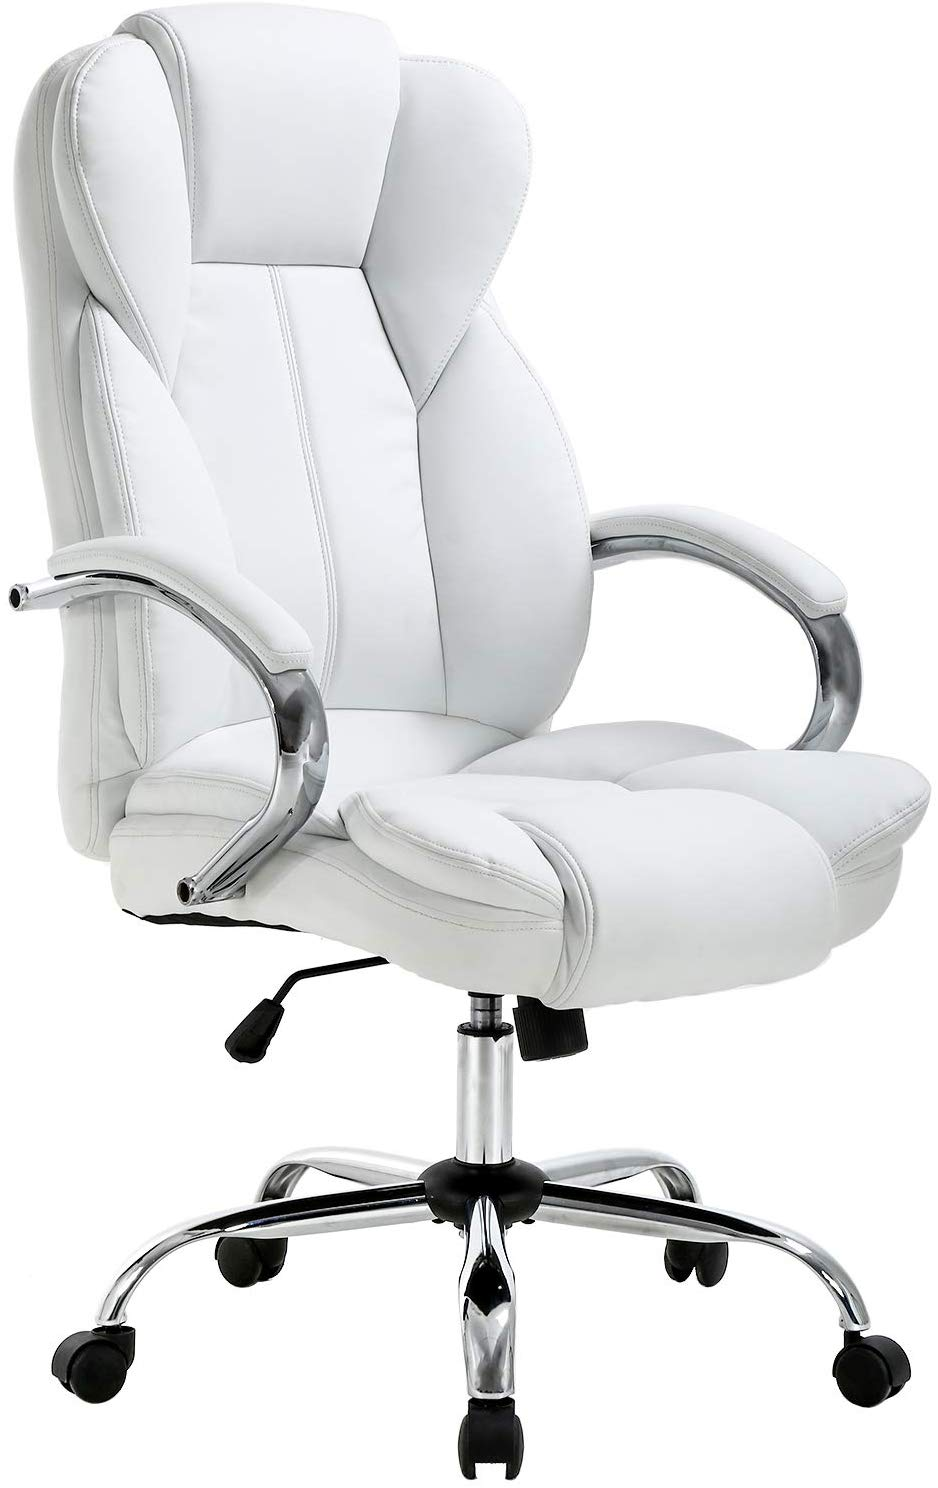 Ergonomic PU Leather Executive Office Chair Desk Task Computer Chair